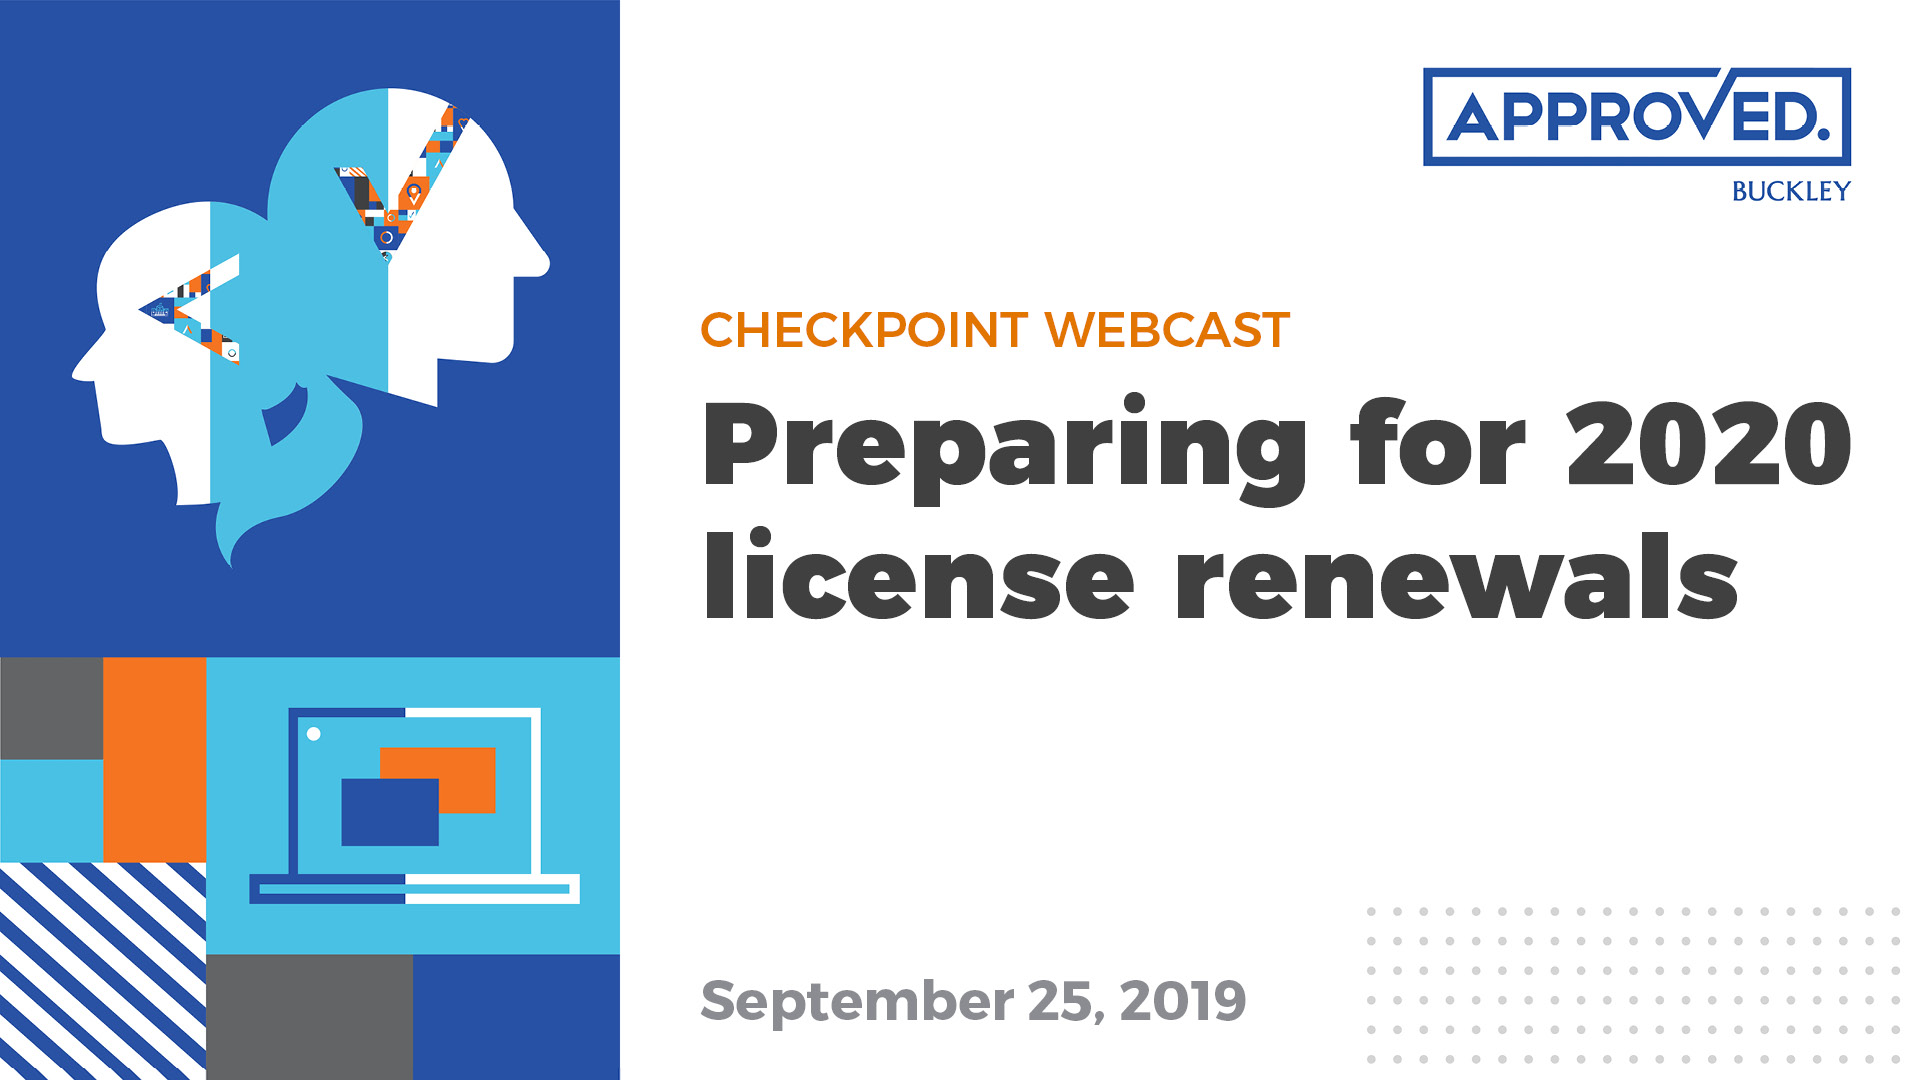 Checkpoint Webcast: Preparing for 2020 license renewals